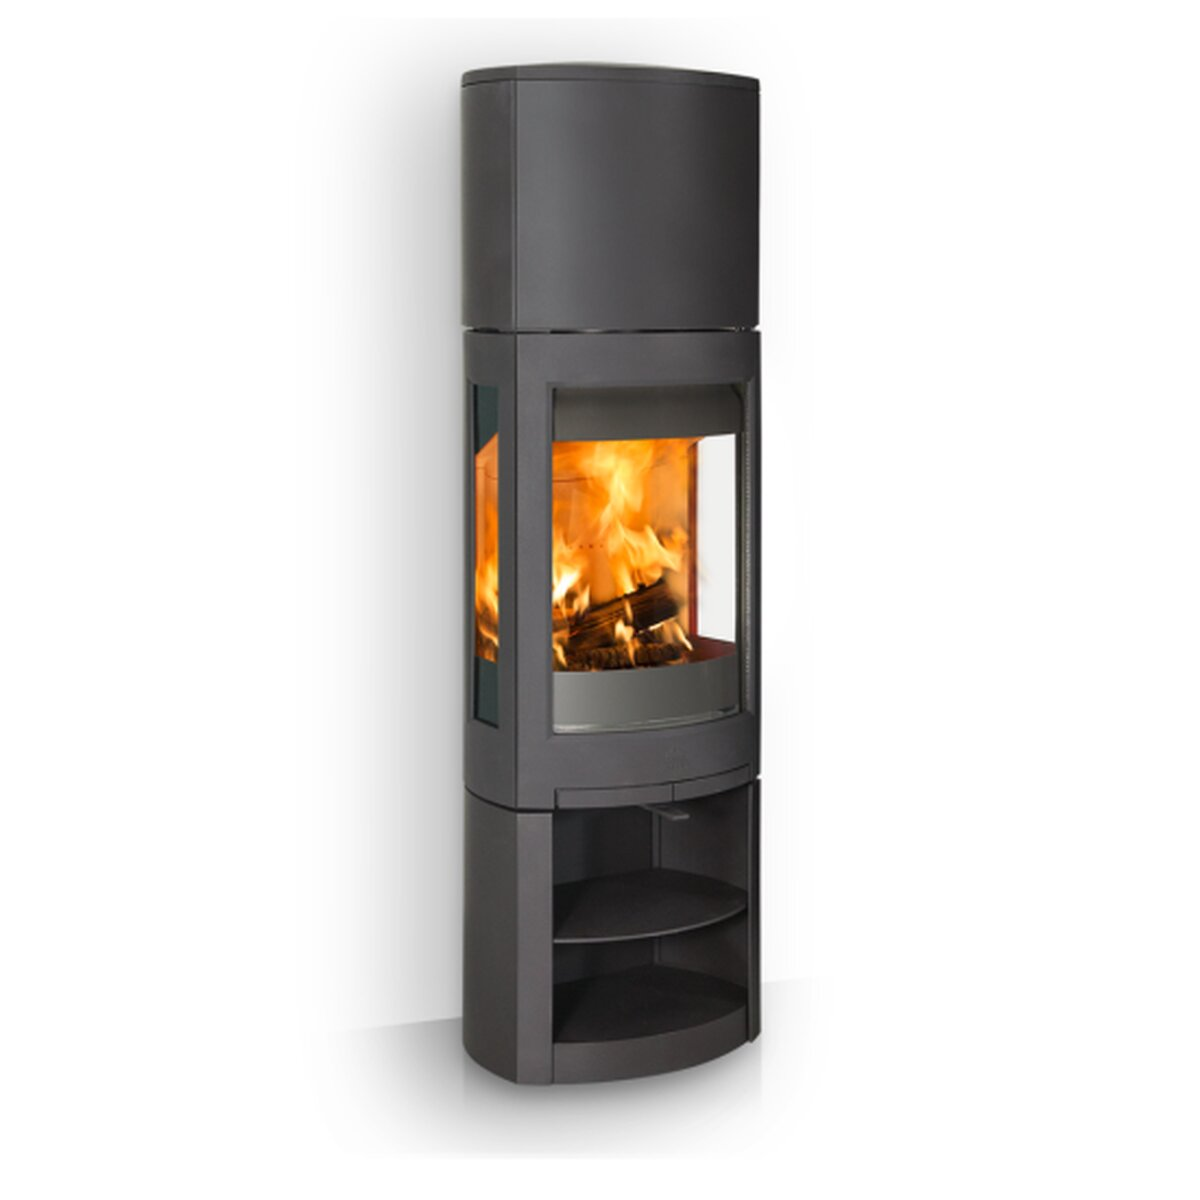 Kaminofen Red Dot Design Kaminofen Gussofen Jotul F 371 Advance High Top Schwarz Lackiert Bp 6 Kw